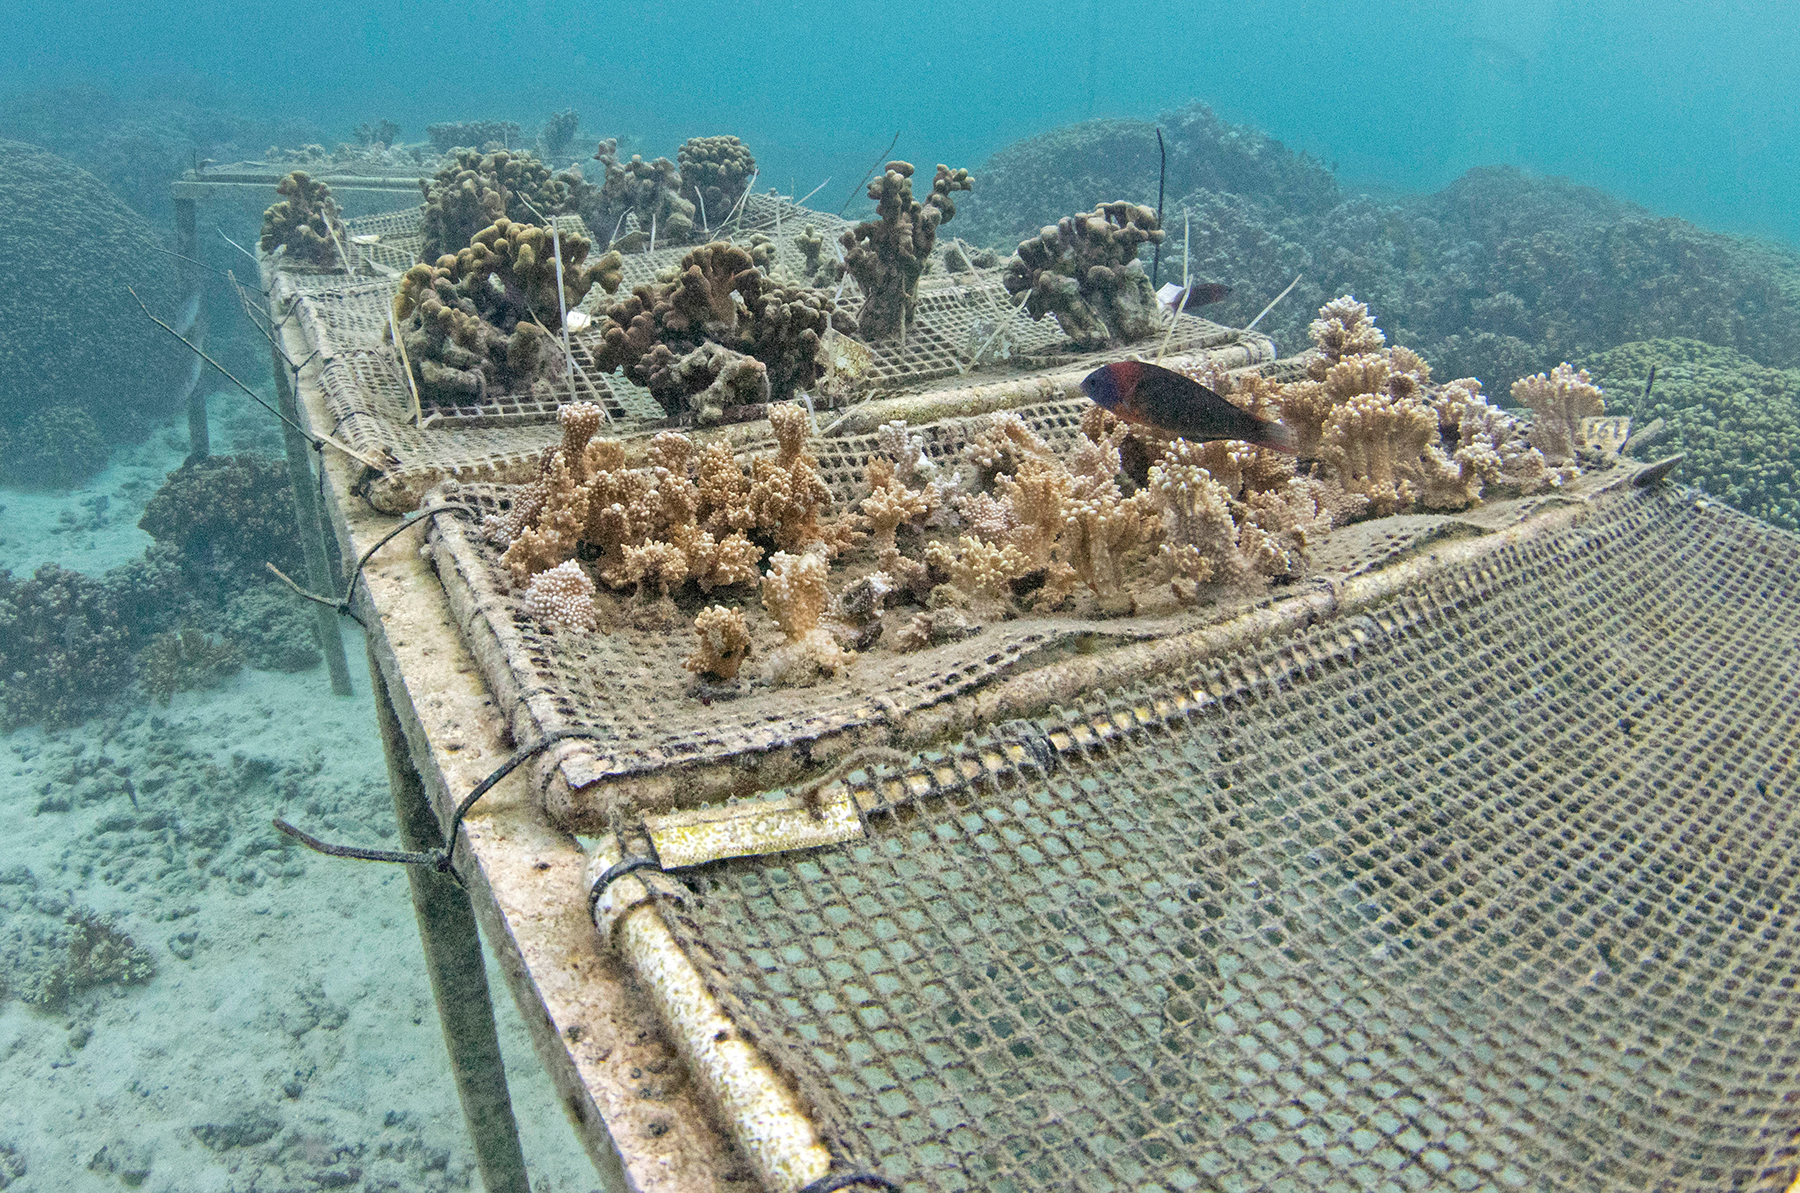 <p>Corals that survived a massive bleaching event in 2015 are being bred with the hope that new colonies can be established to resist climate change.</p>